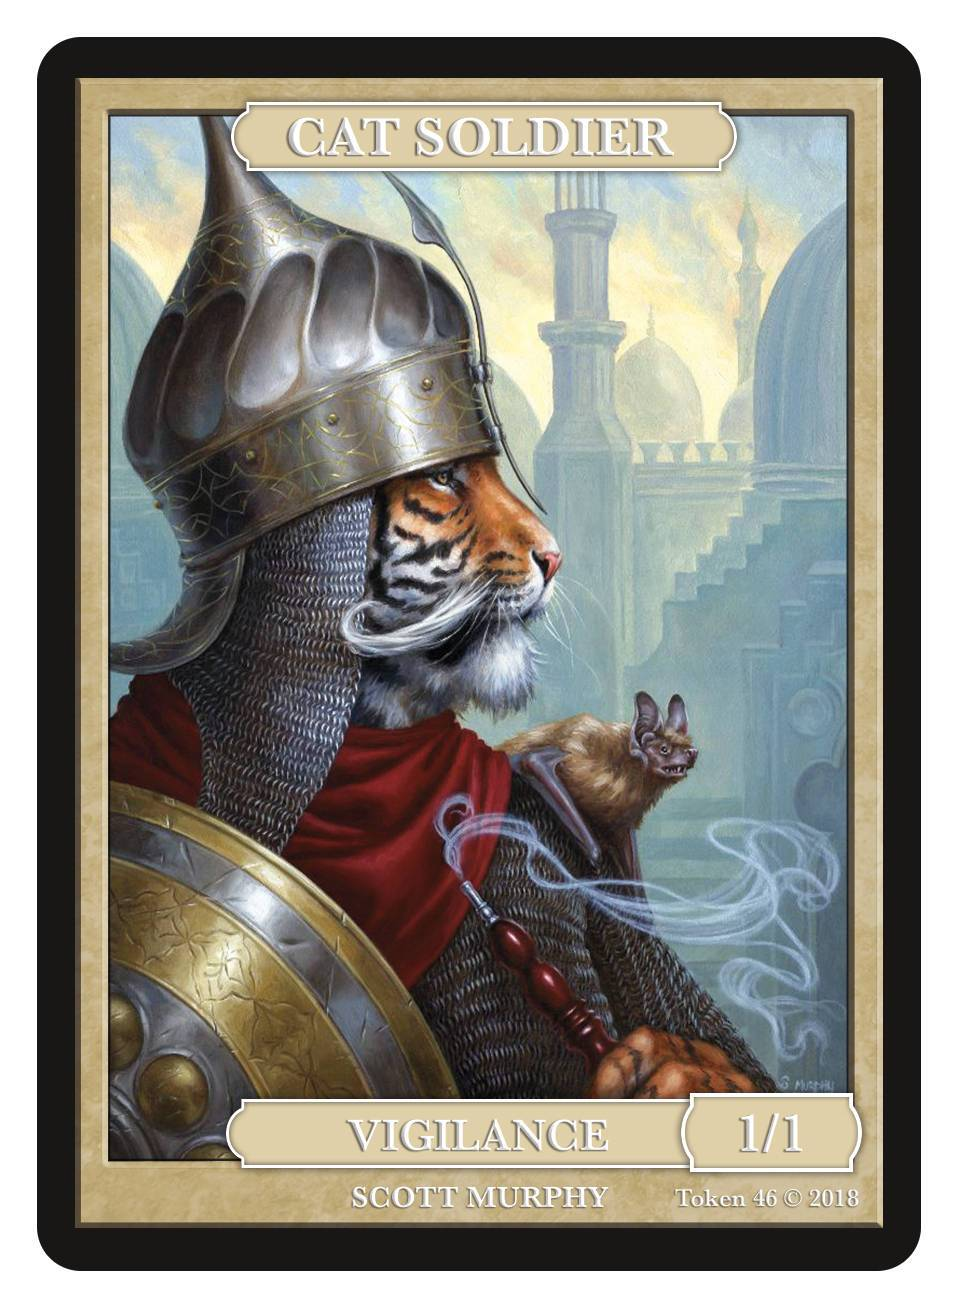 Cat Soldier Token (1/1 - Vigilance) by Scott Murphy